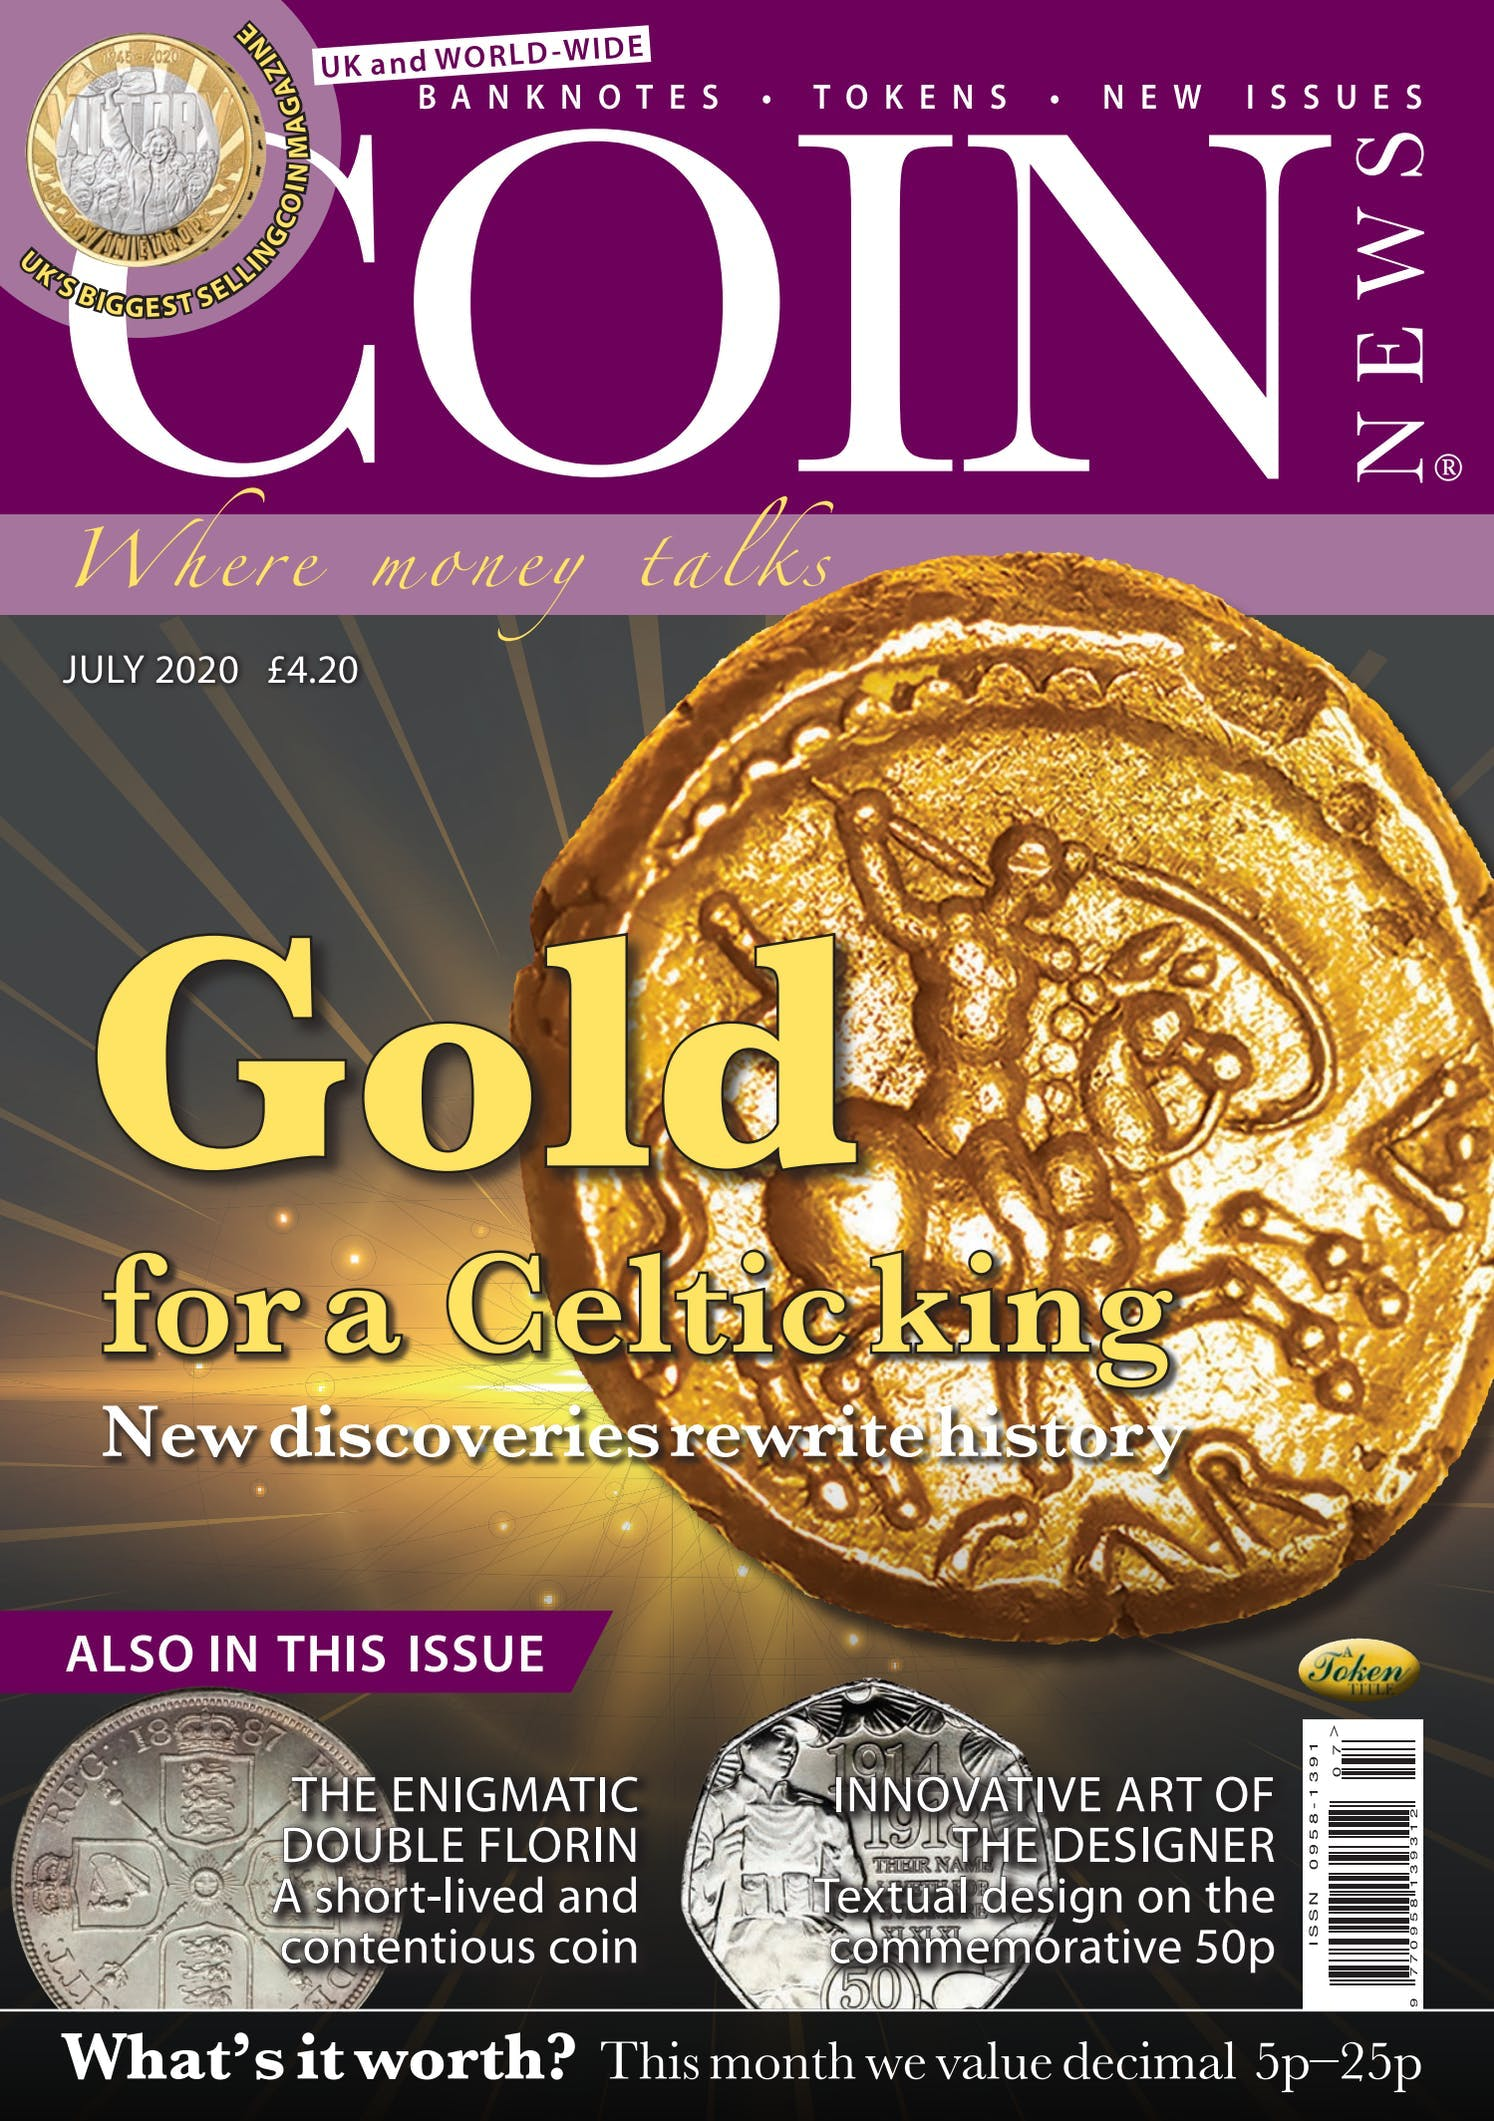 The front cover of Coin News, July 2020 - Volume 57, Number 7